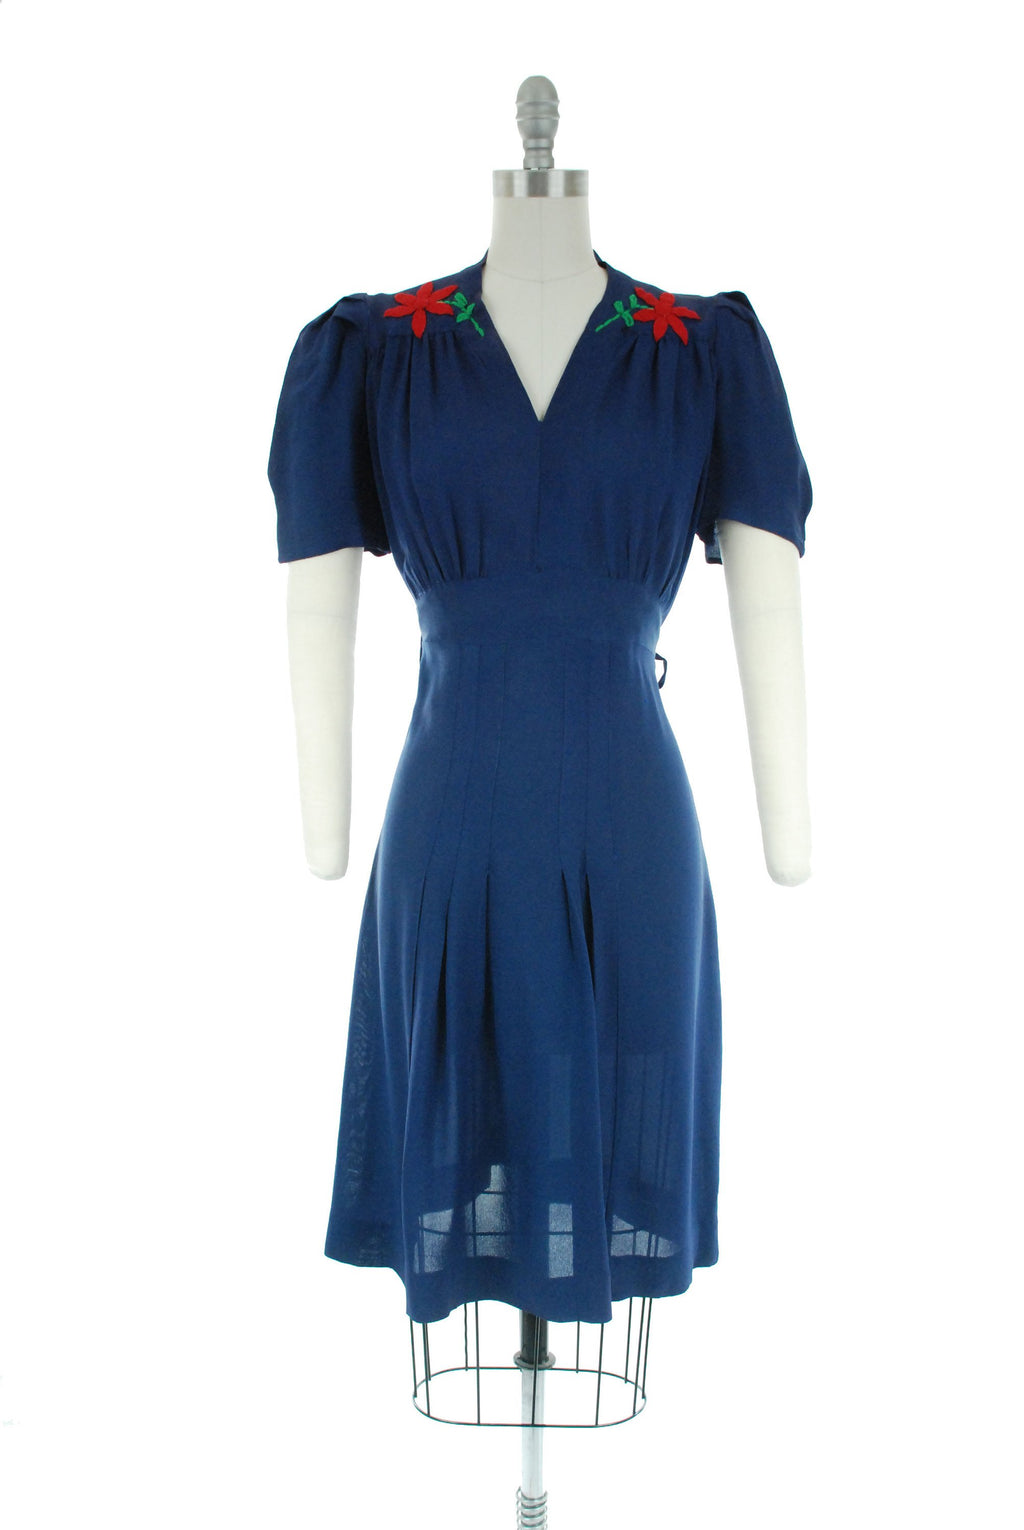 Vintage 1930s Dress Set - Charming Late 30s Homemade Striped Dress in Navy and White Silky Rayon